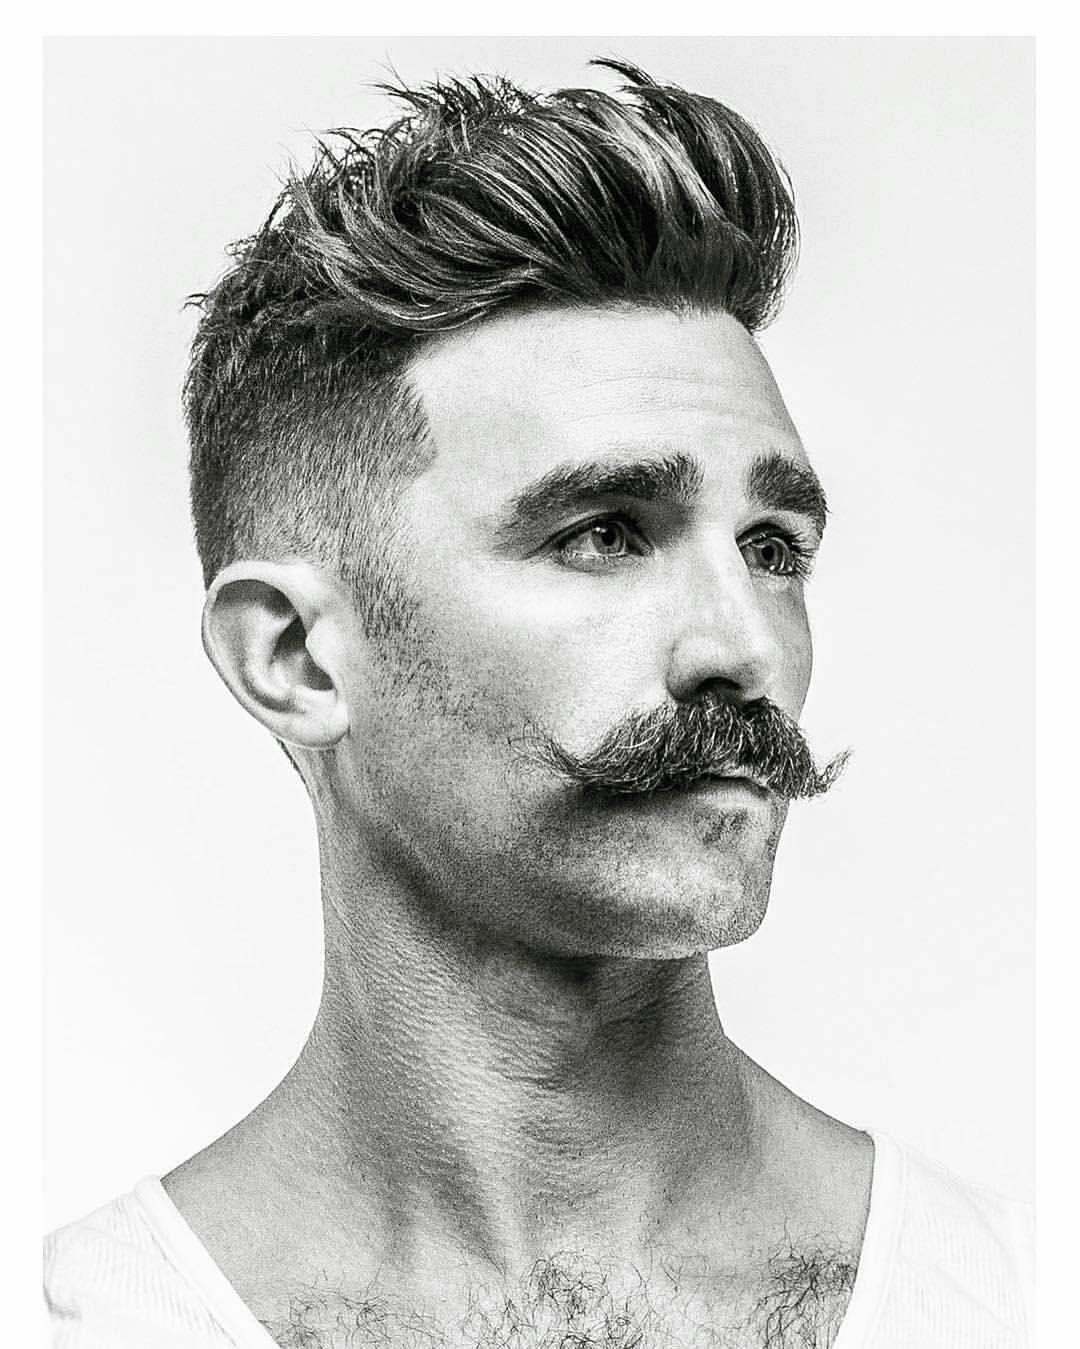 online hair styling male best 25 mustache ideas on different styles of 5417 | c6bd772d2e9d2201193b40d4a1443dca